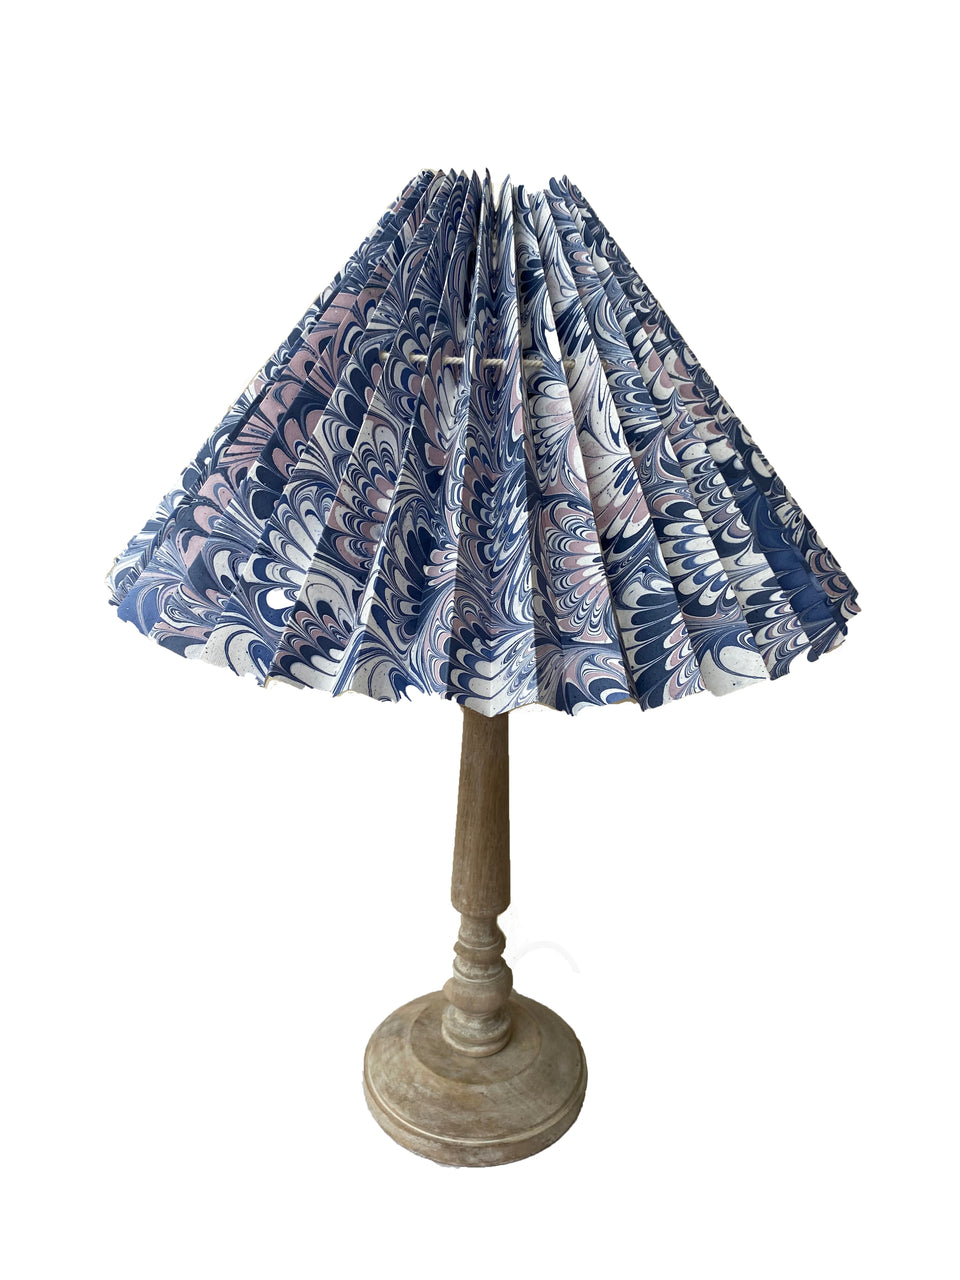 HANDMADE MARBELED PAPER LAMPSHADE IN BLUE, PINK AND WHITE